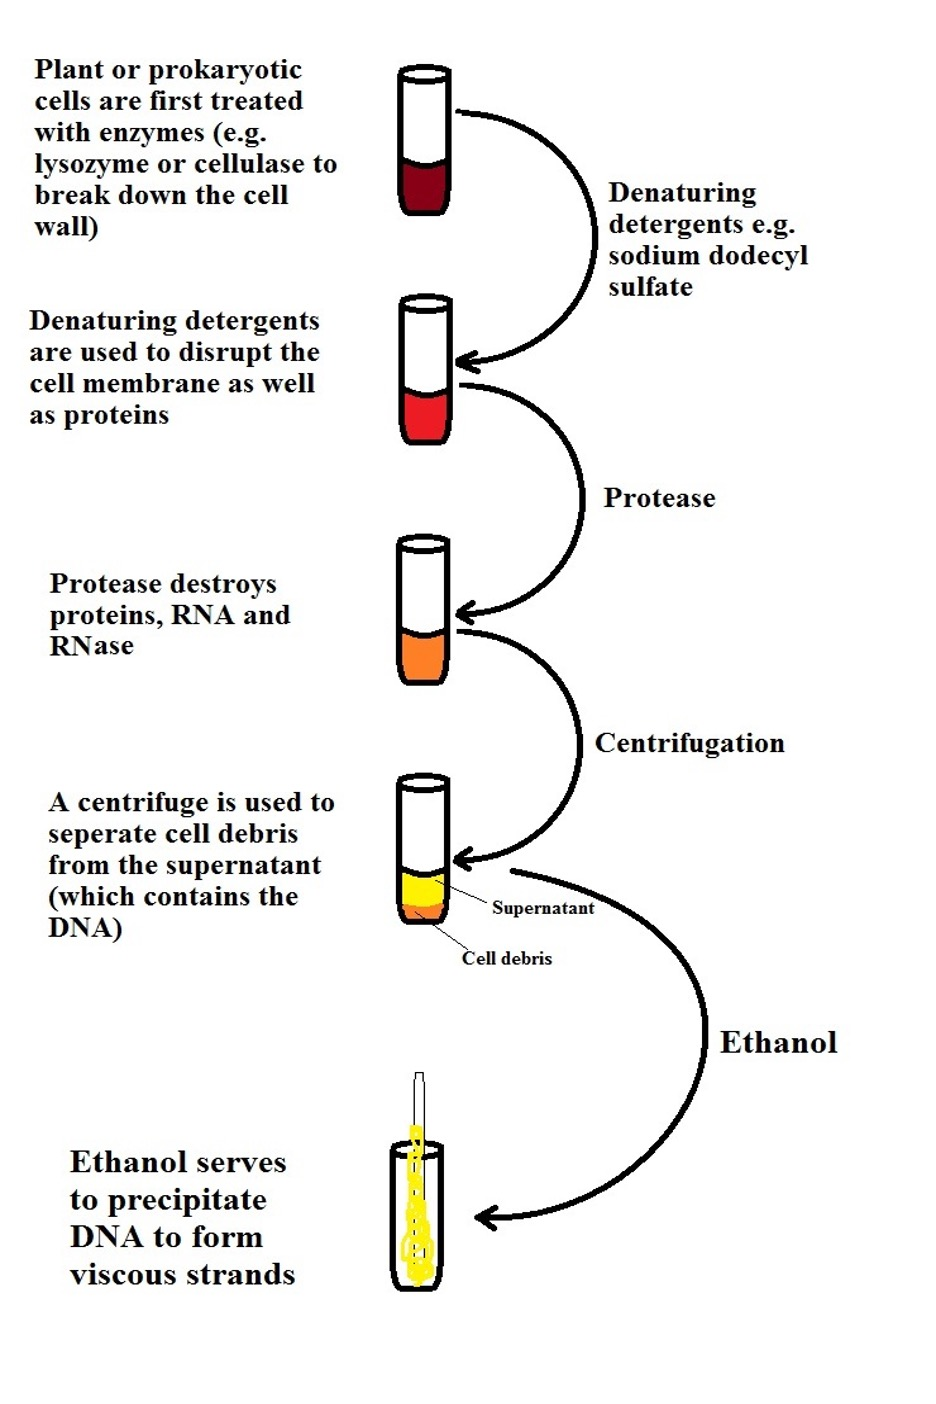 General representation of DNA isolation and purification by MicroscopeMaster.com